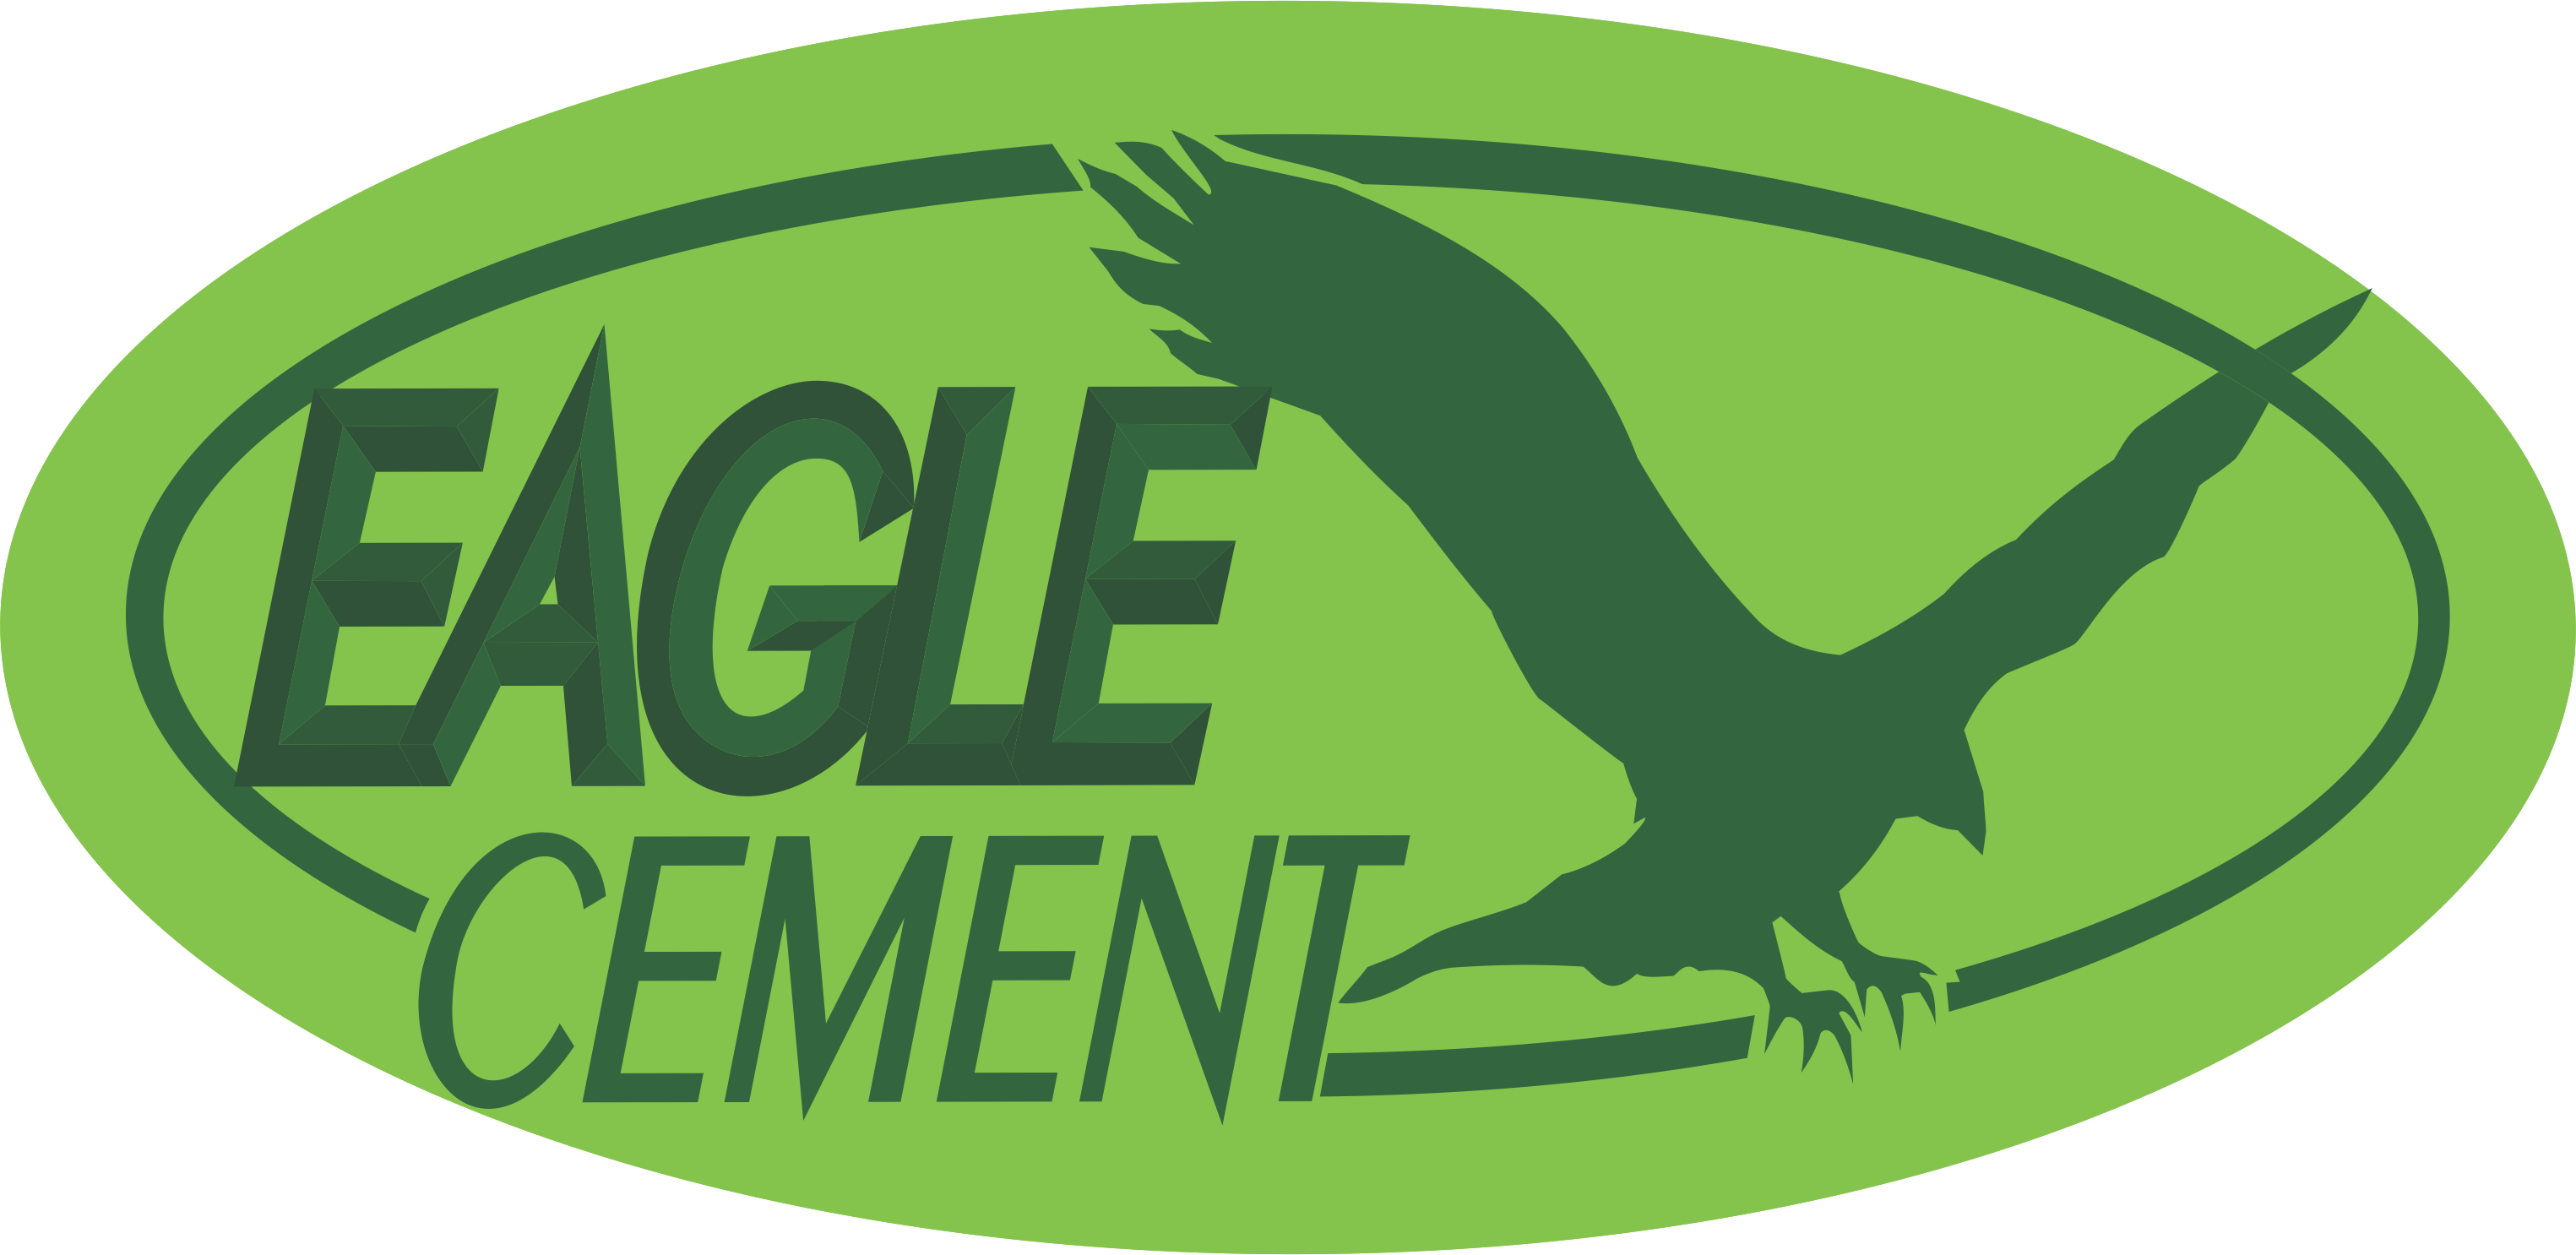 Eagle Cement Corporation